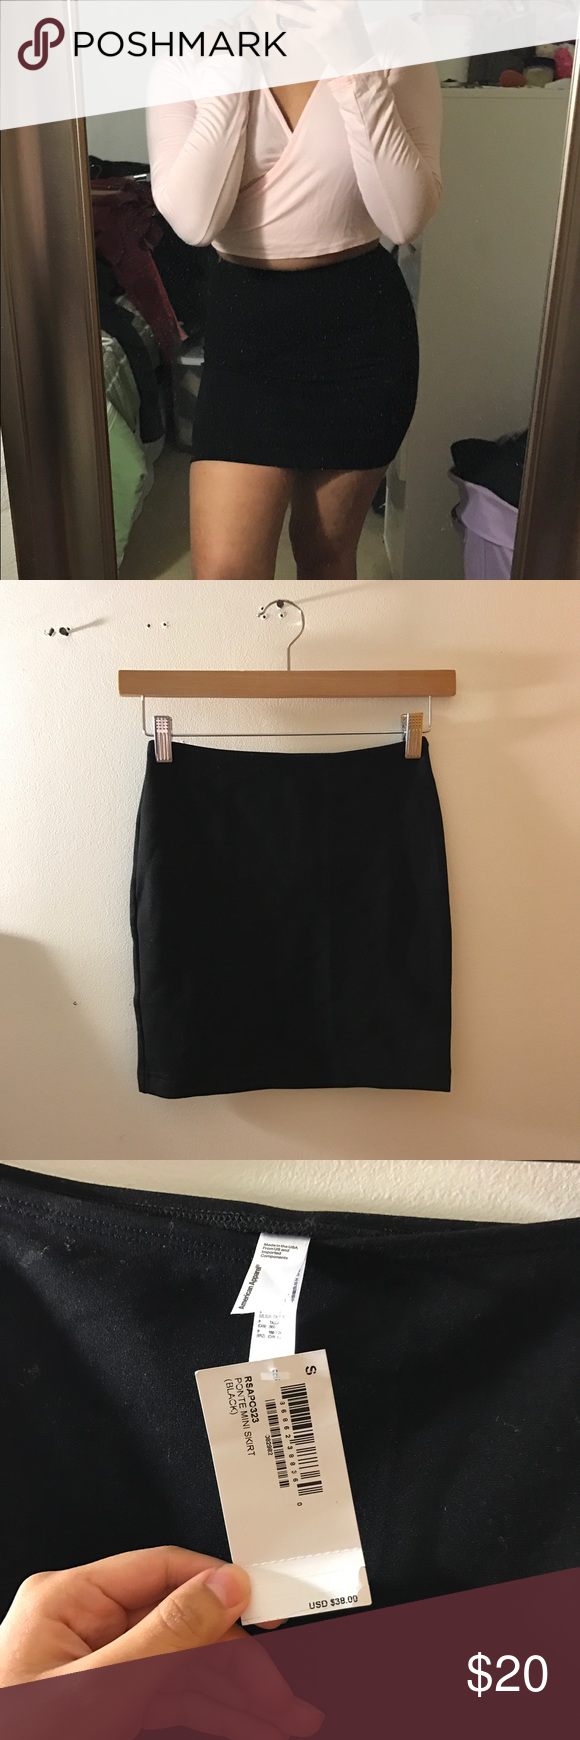 8582edfae AA Black Mini Skirt Black Ponte Mini Skirt from American Apparel! Size  small and is true to size, in great condition and new with tags.